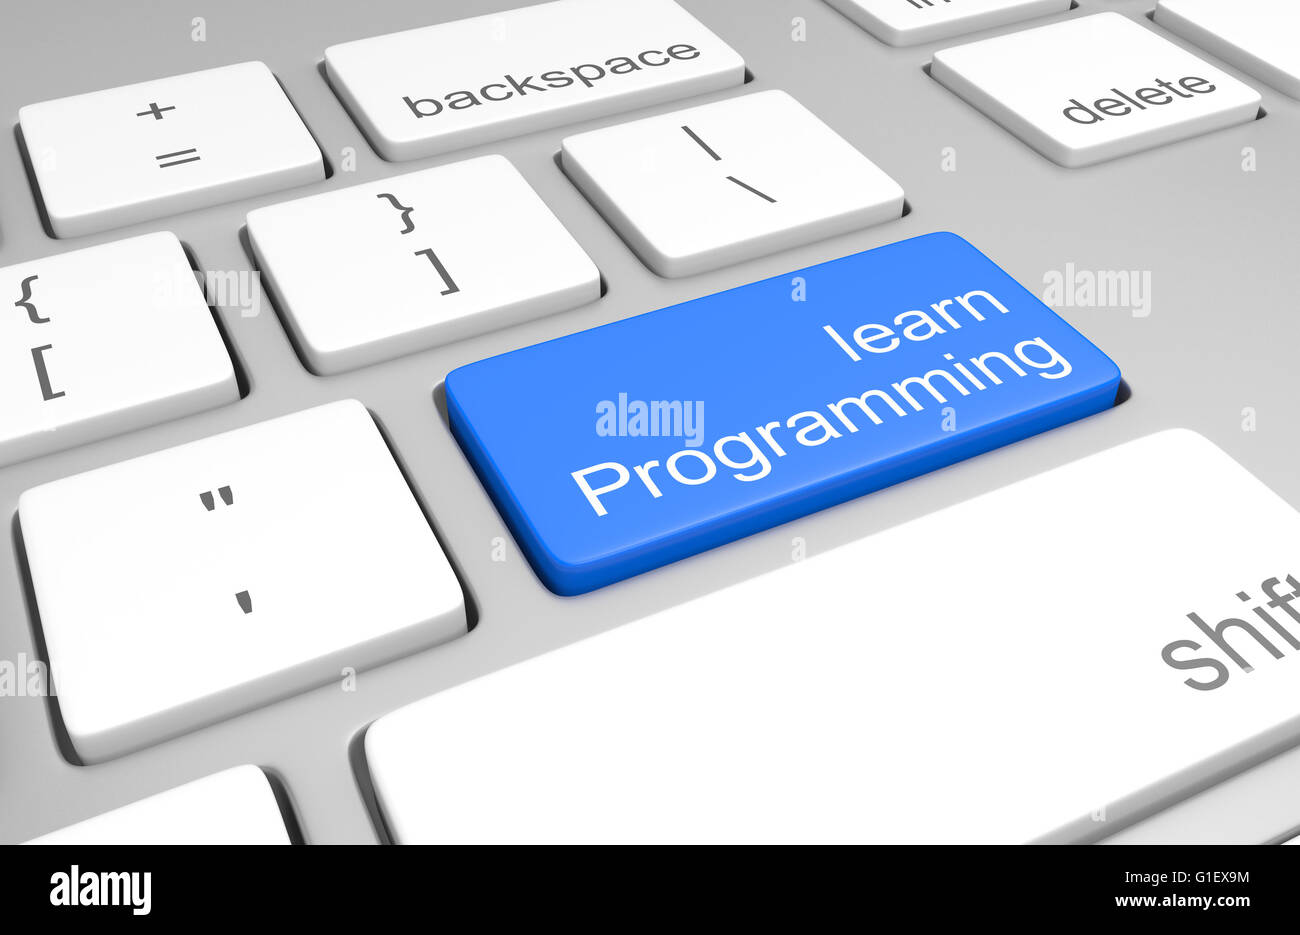 Learn programming key on a computer keyboard for learning to